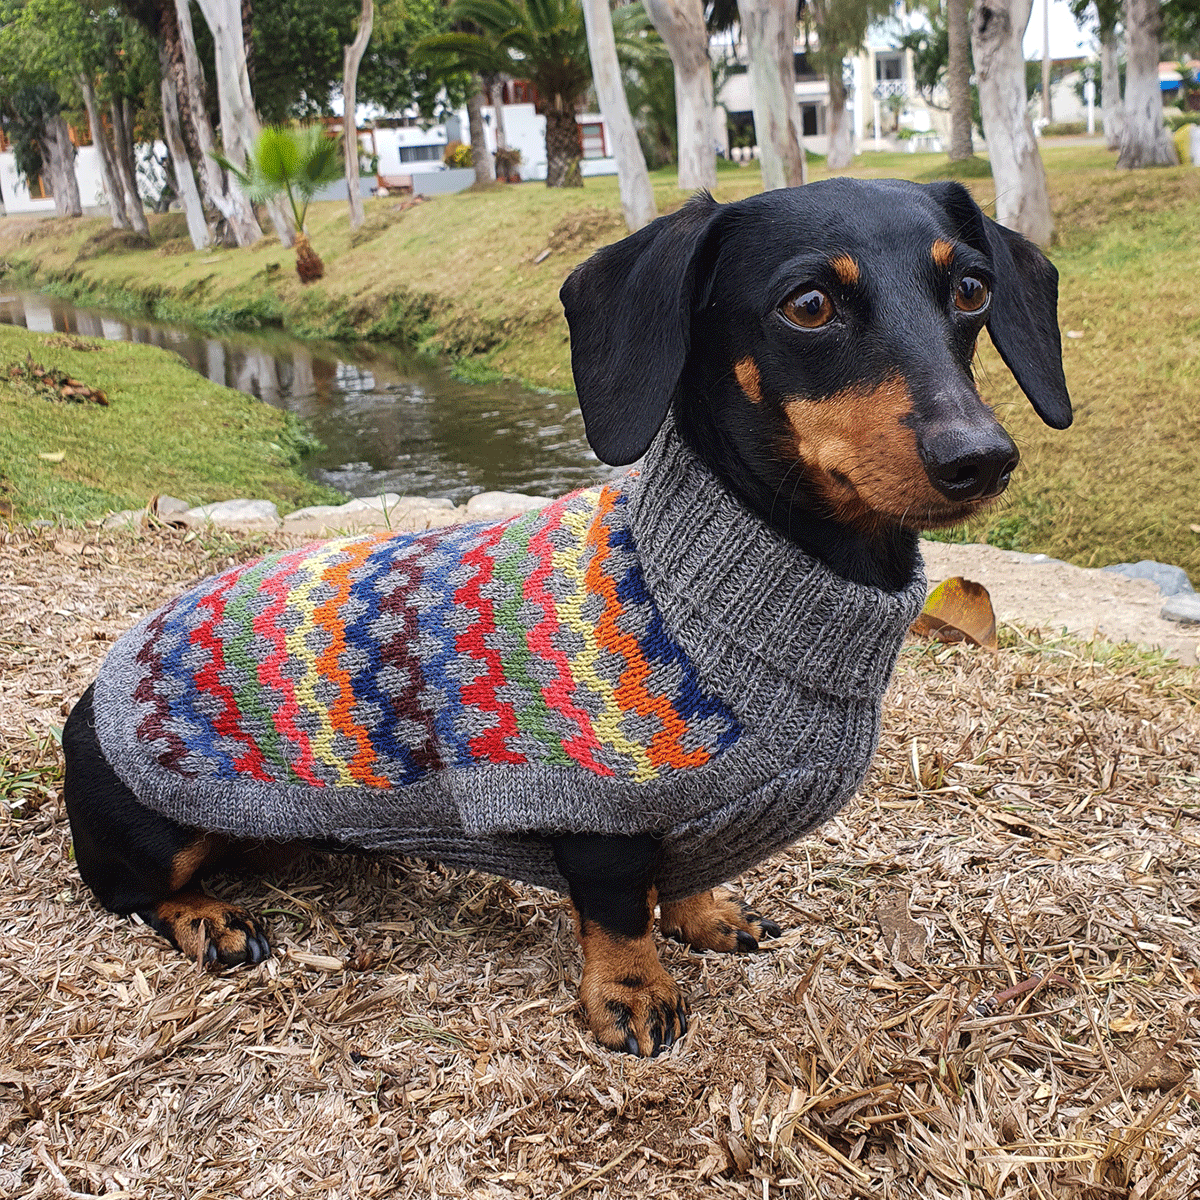 Crossroads-Collection 2020: Alqo Wasi alpaca sweater for dogs